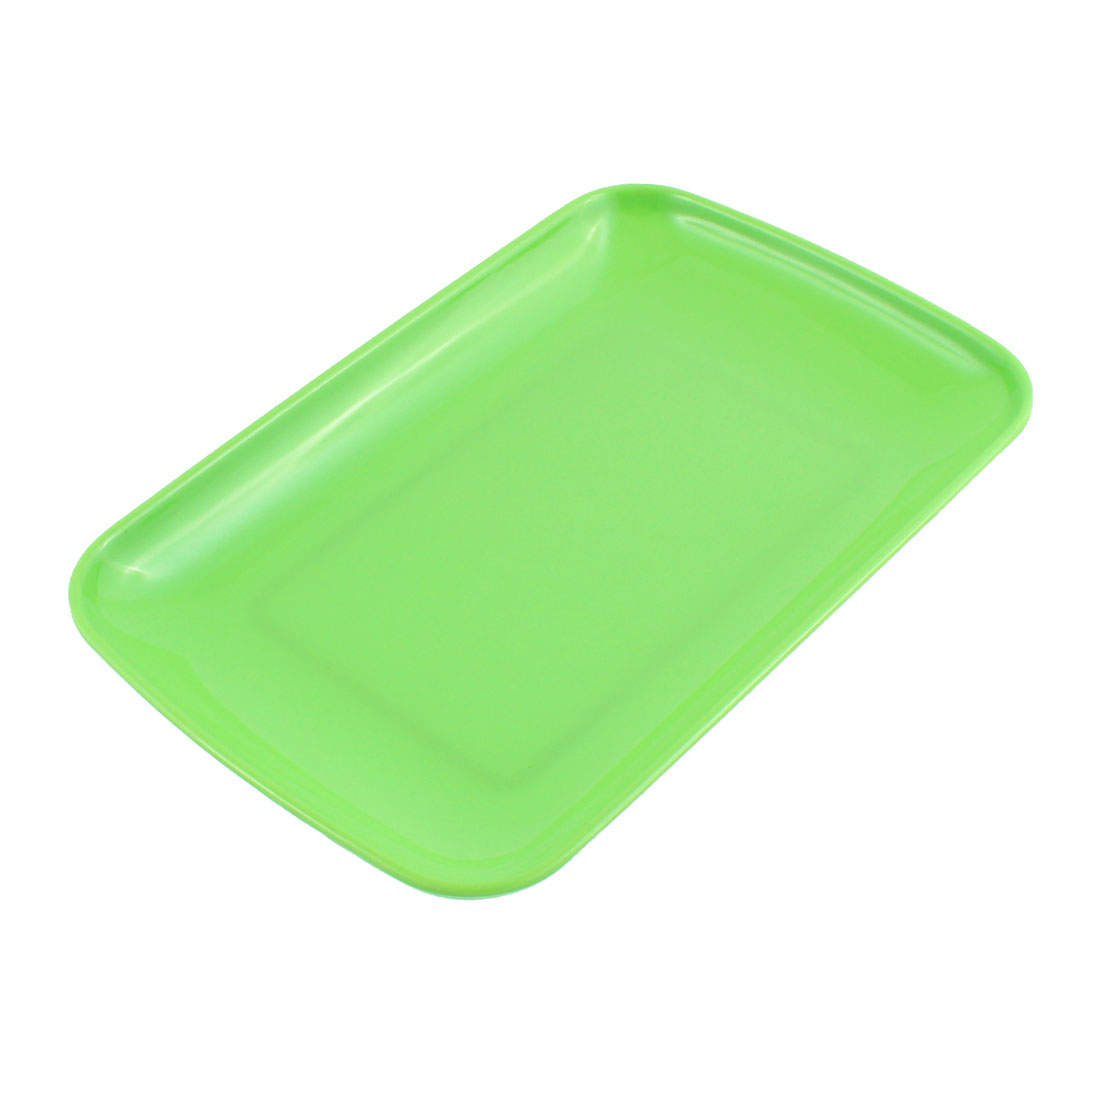 "Plastic Rectangle Shaped Dinner Dessert Vermicelli Snack Plate Dish Green 9.5"" x 6"""